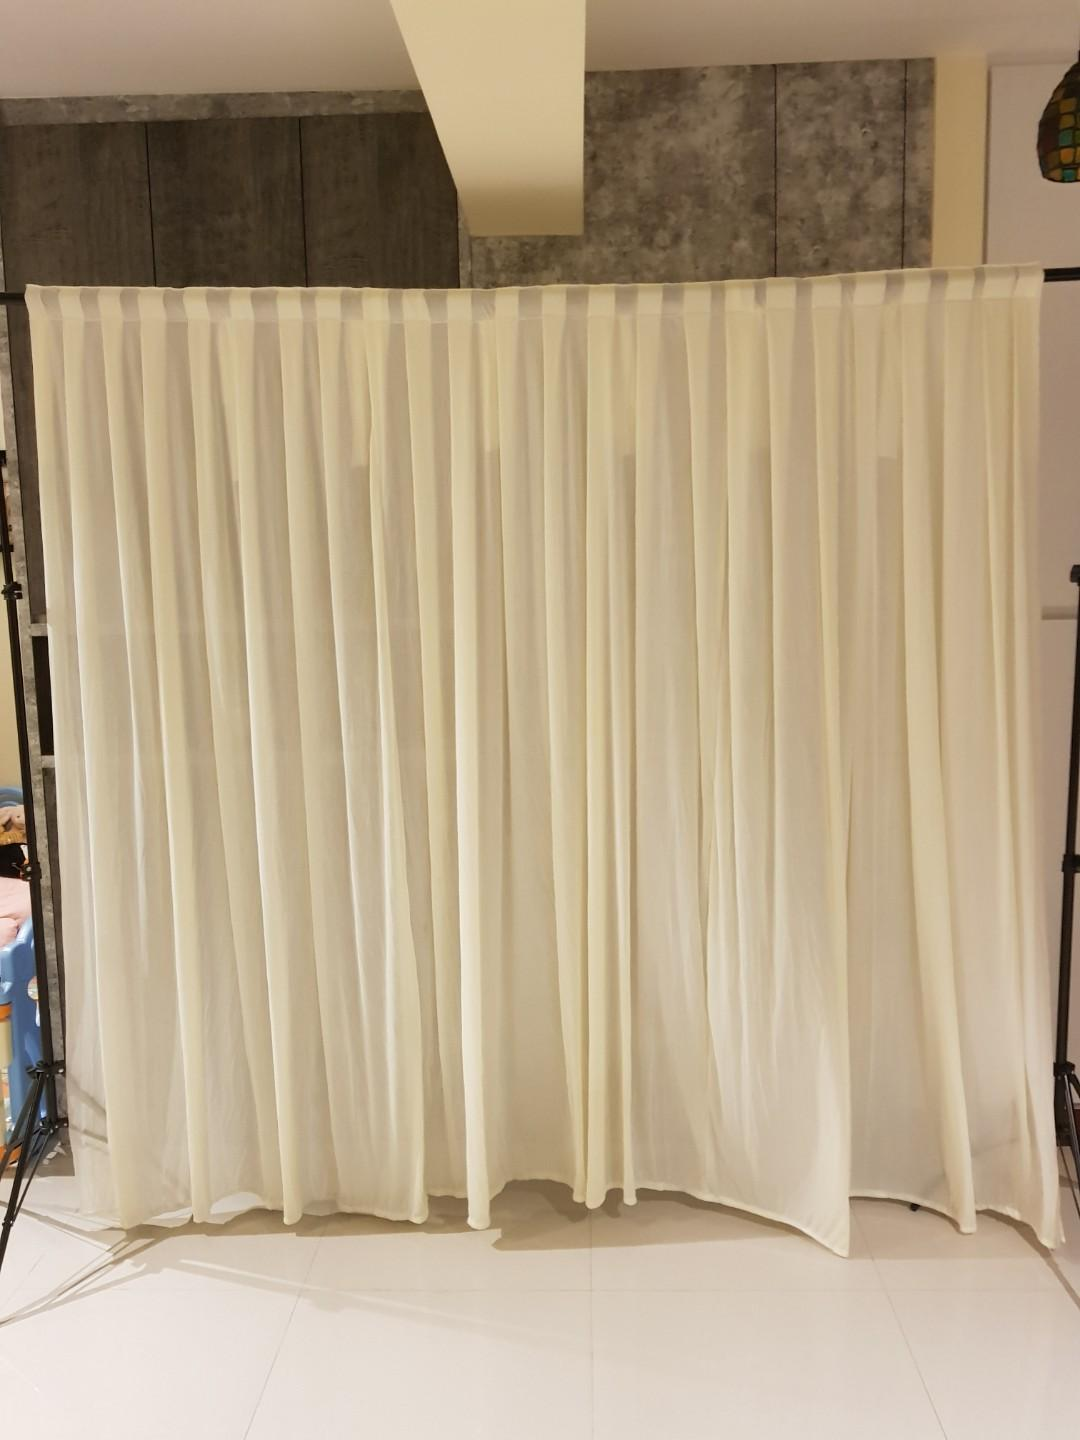 [RENTAL] Photography EVENT Backdrop